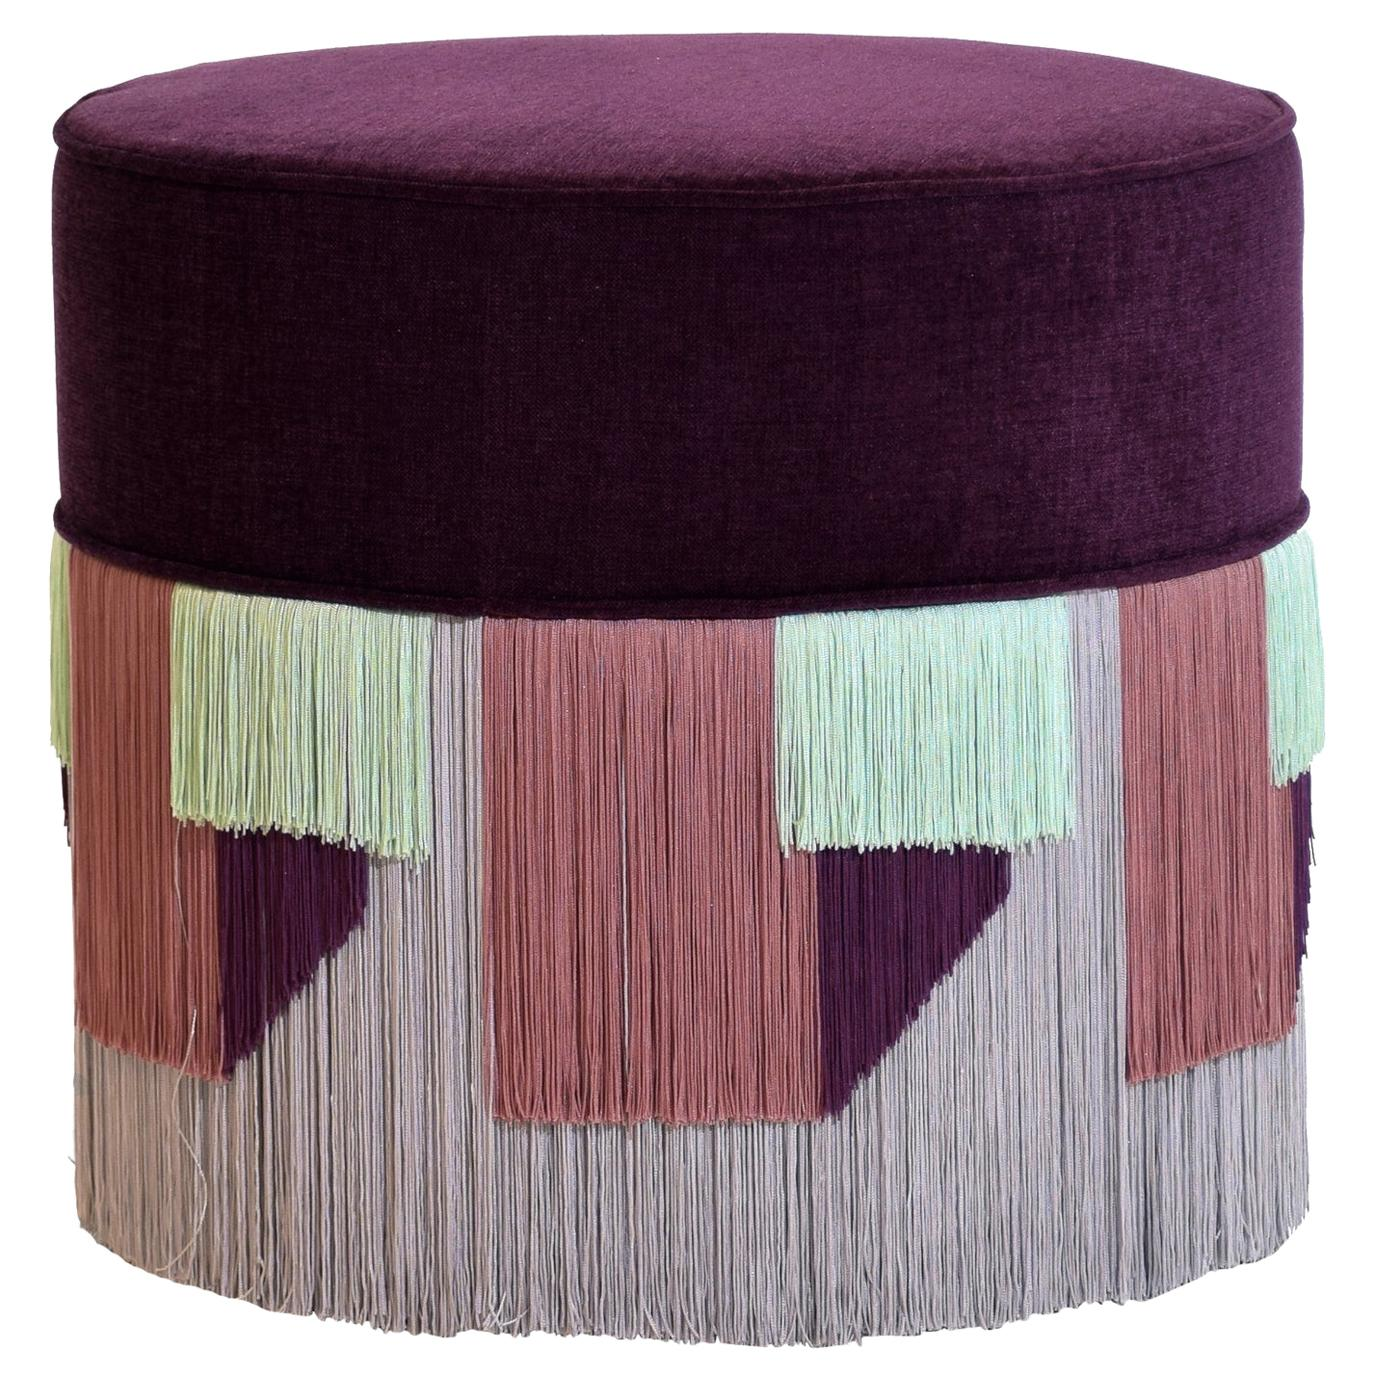 Couture Violet Pouf with Geometric Fringe